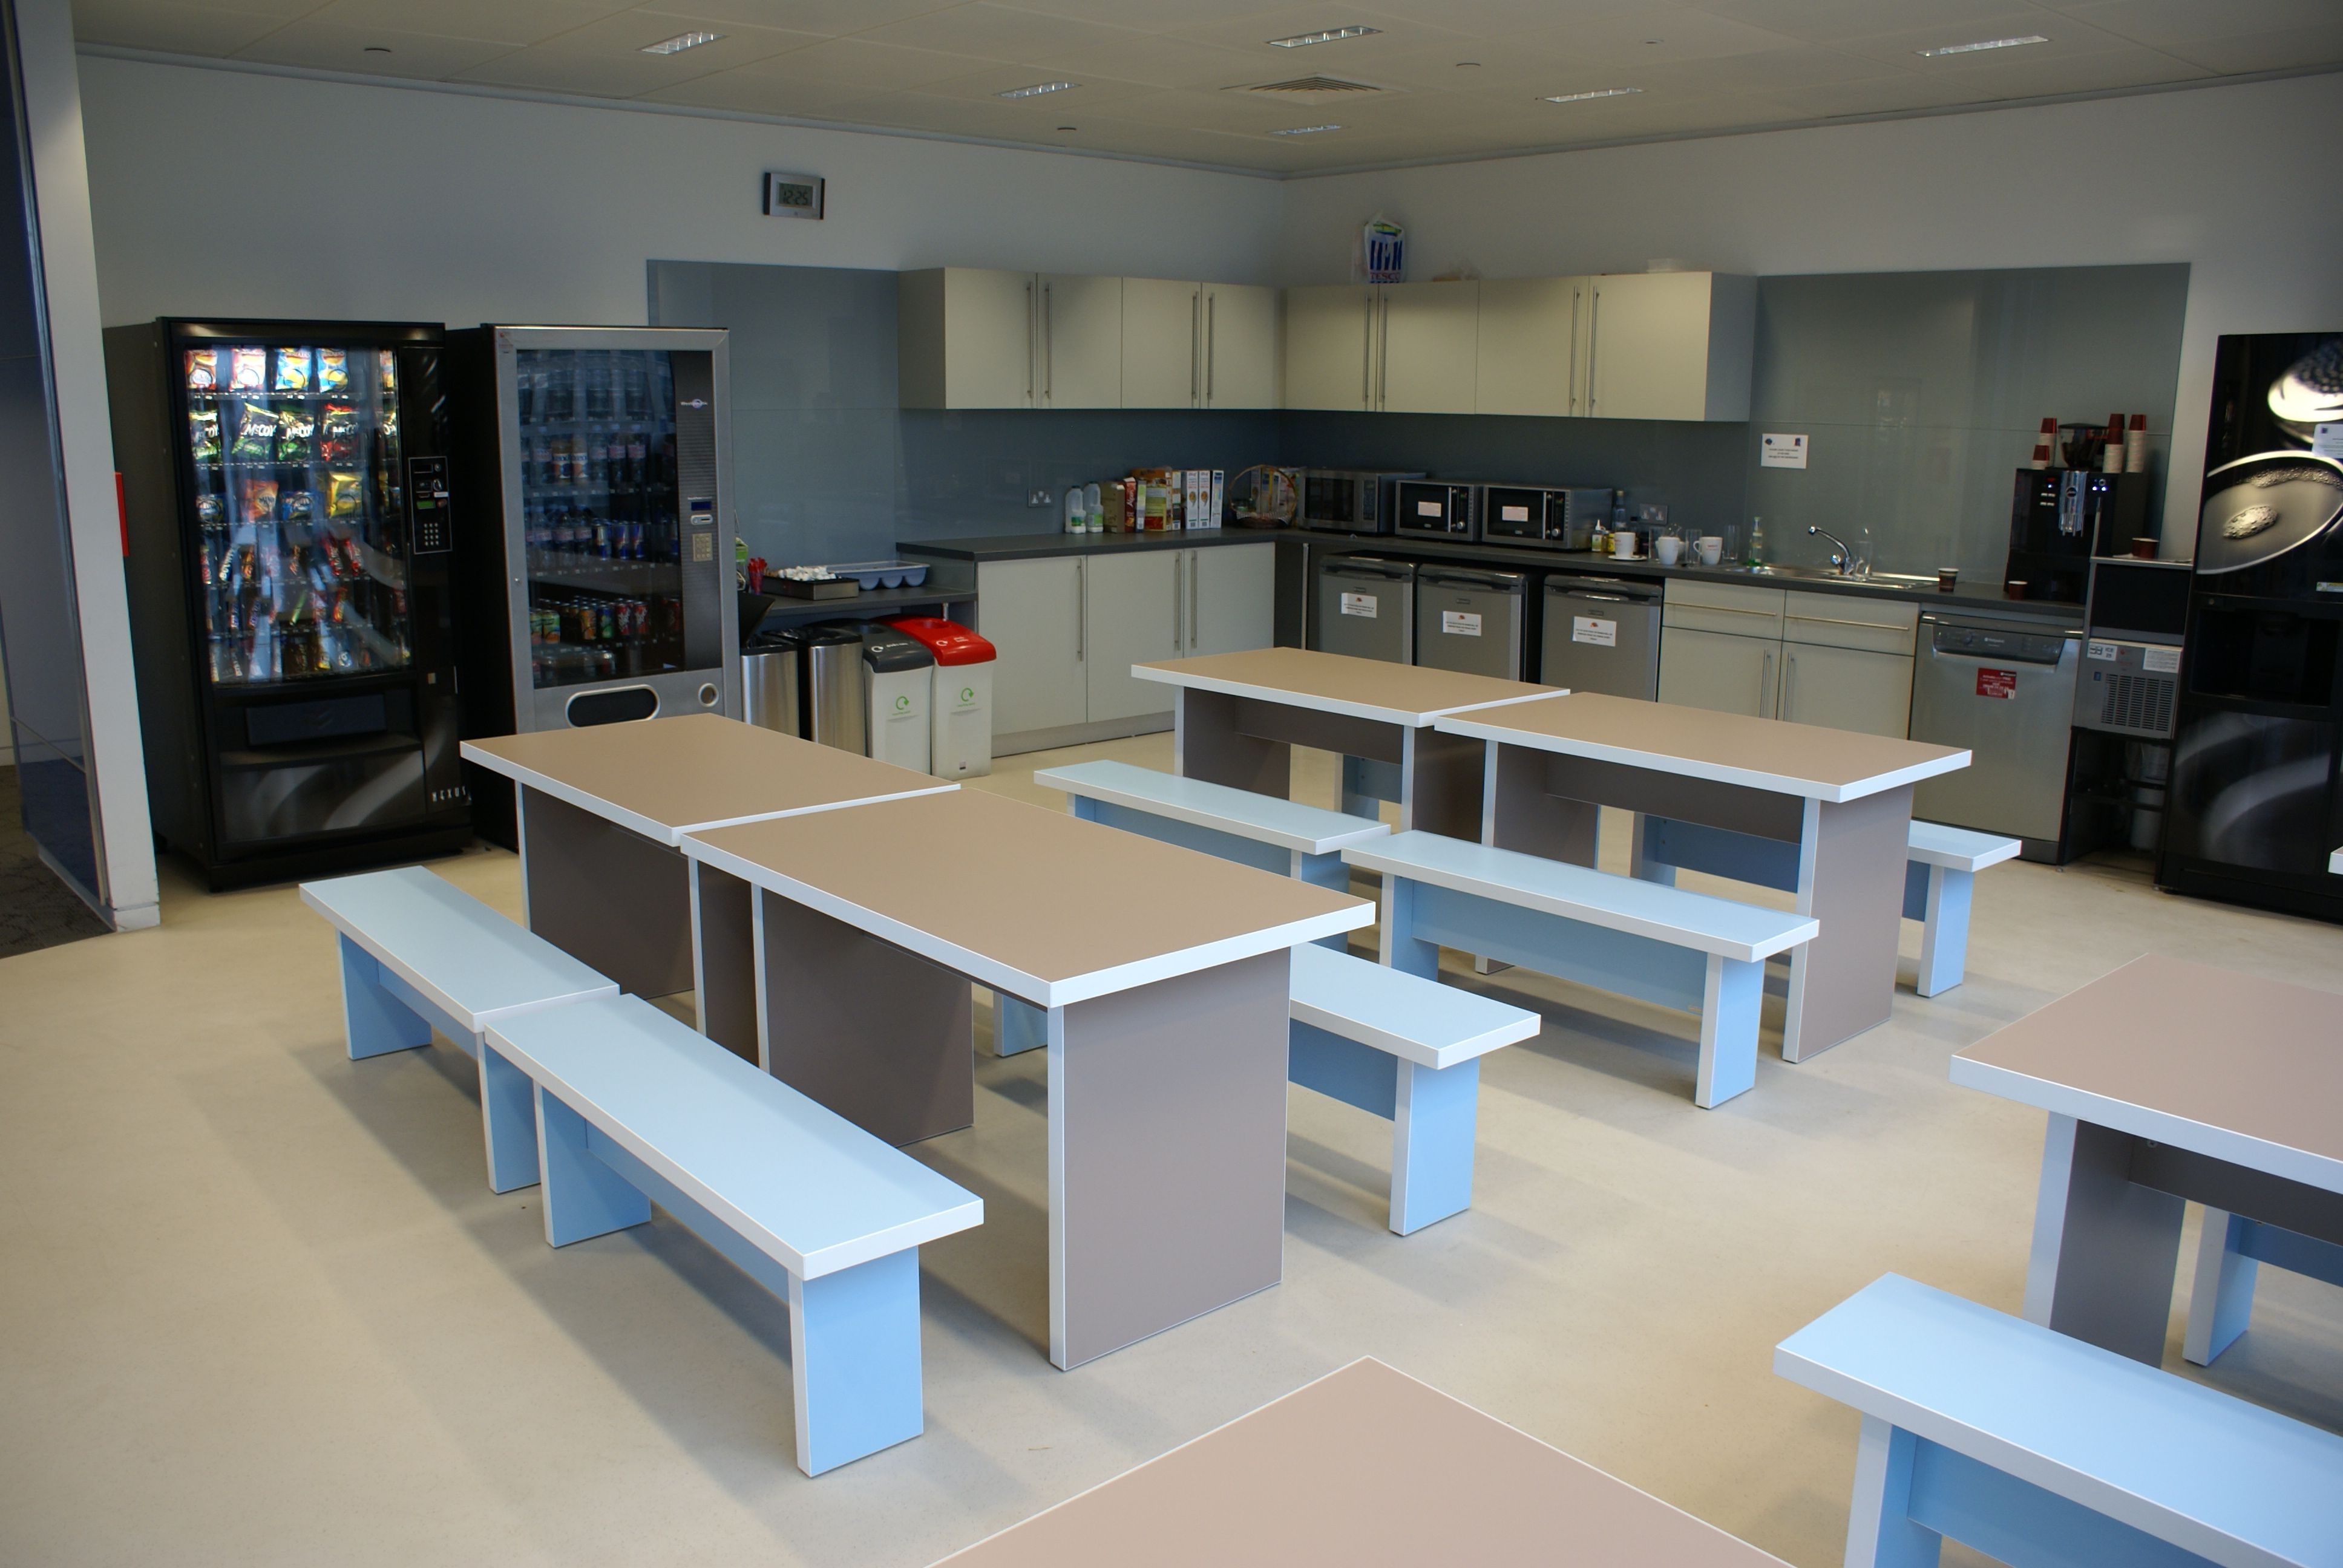 Office Furniture Slab End Benches With Contrasting Edges And Coordinating Bench Seating